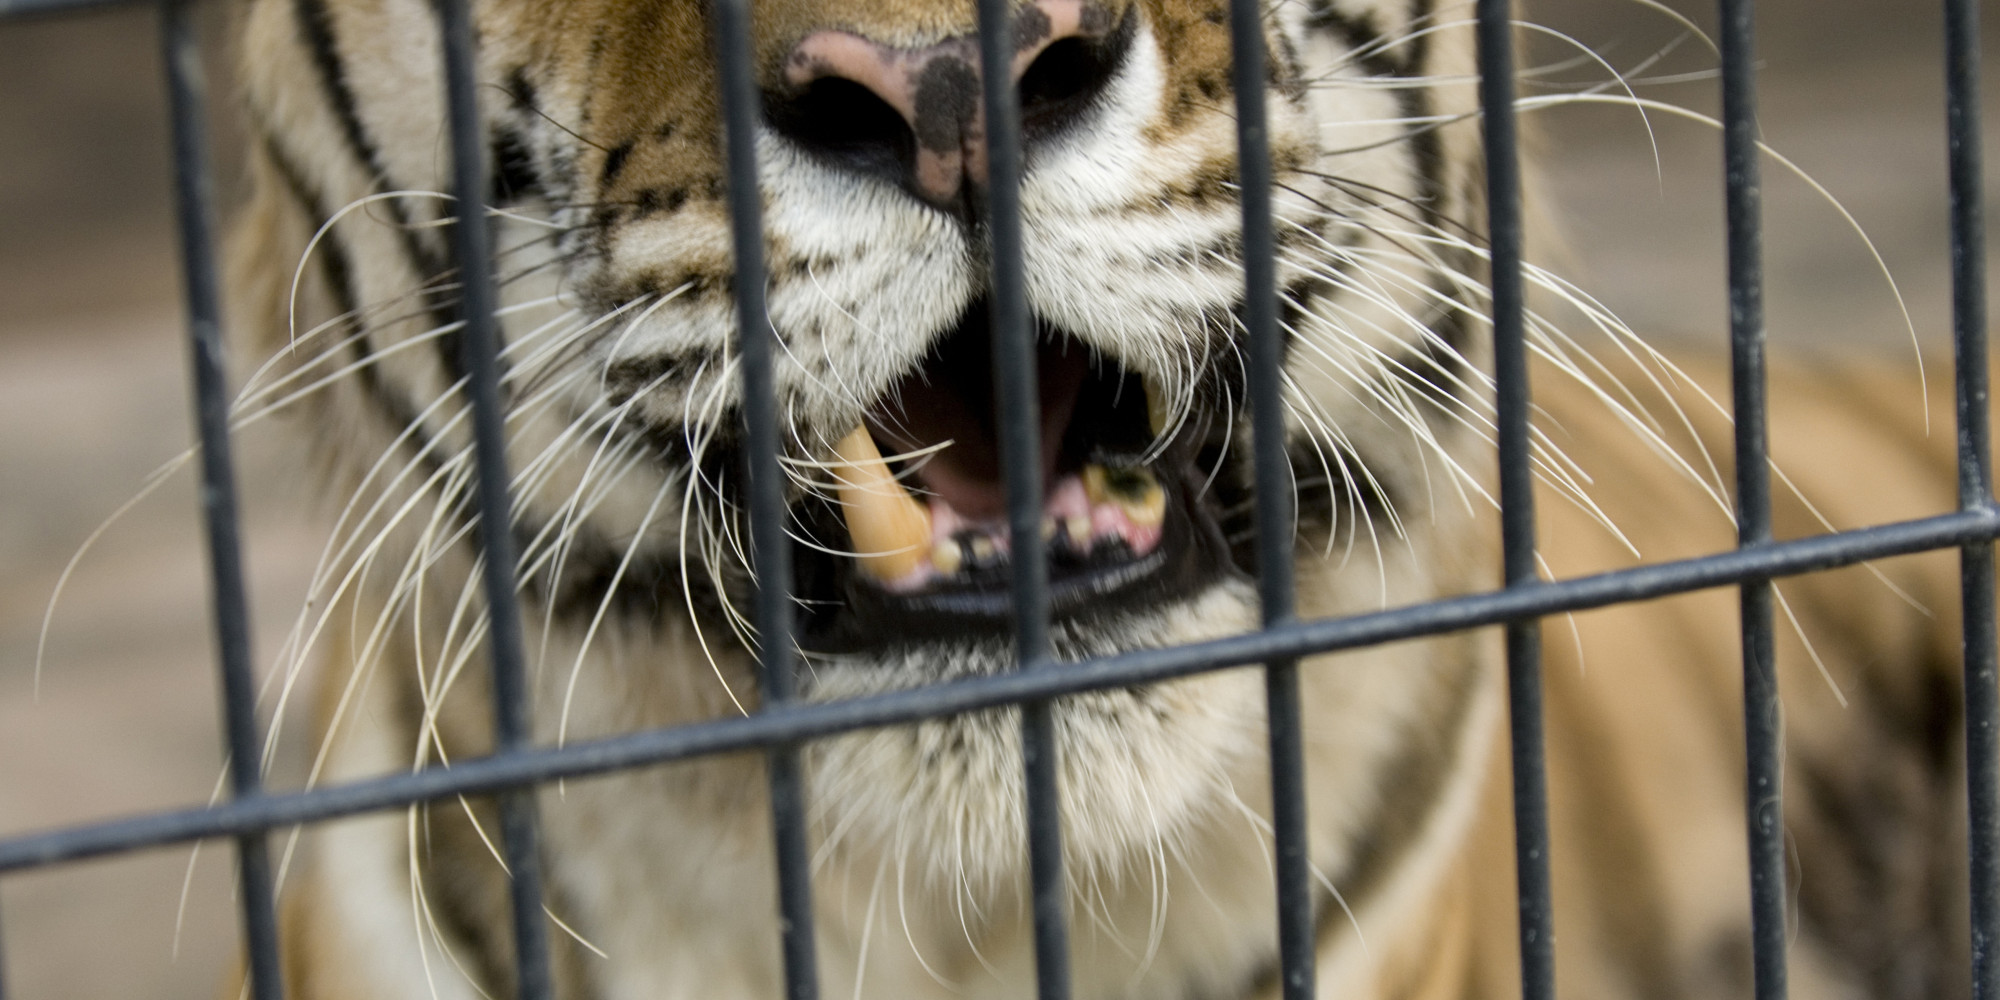 O tiger cage facebook clean malaysia - Tiger in cage images ...